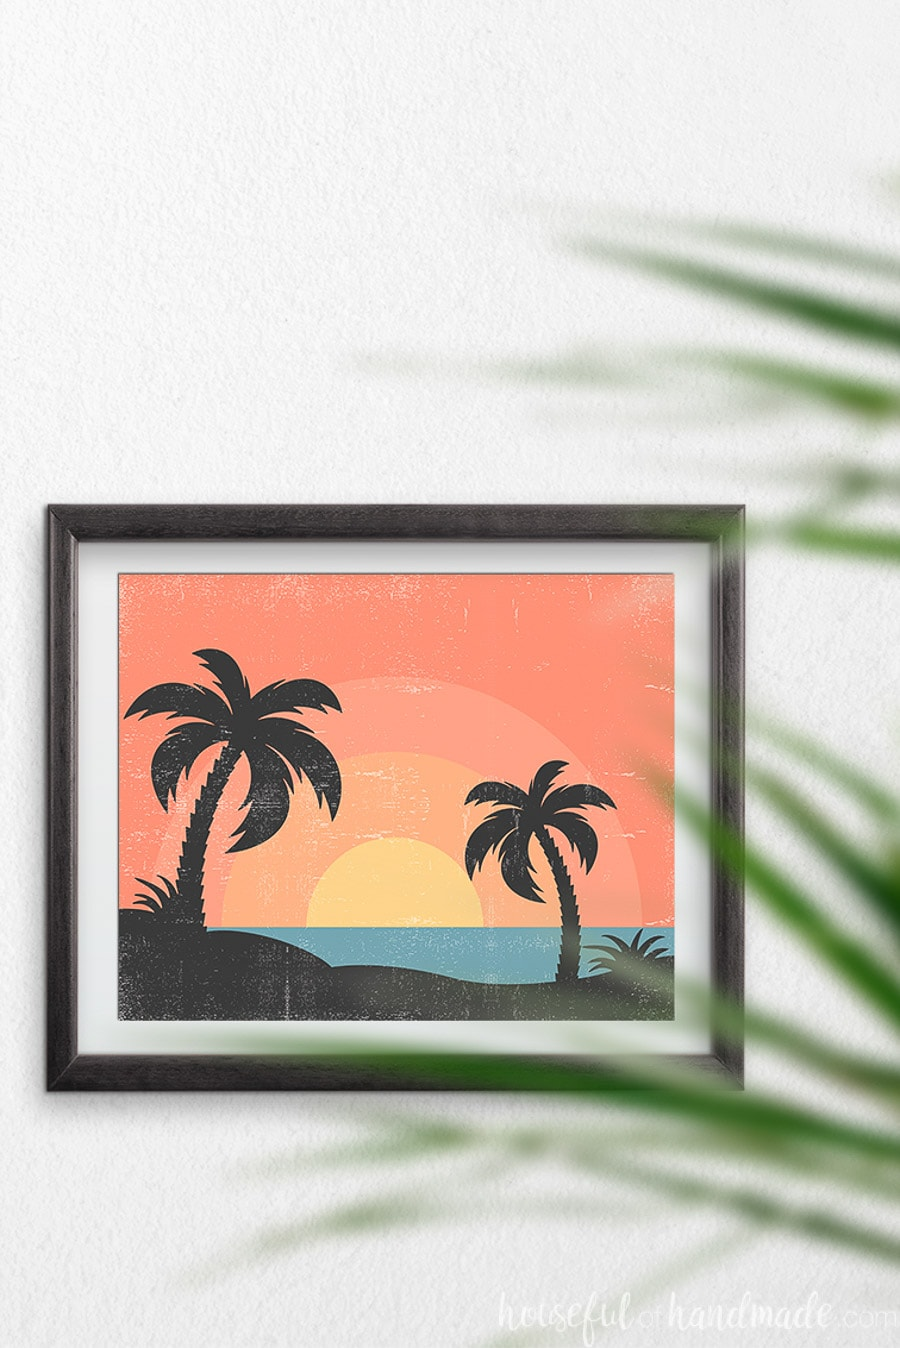 Horizontal tropical art with 2 palm trees looking over the ocean sunset.